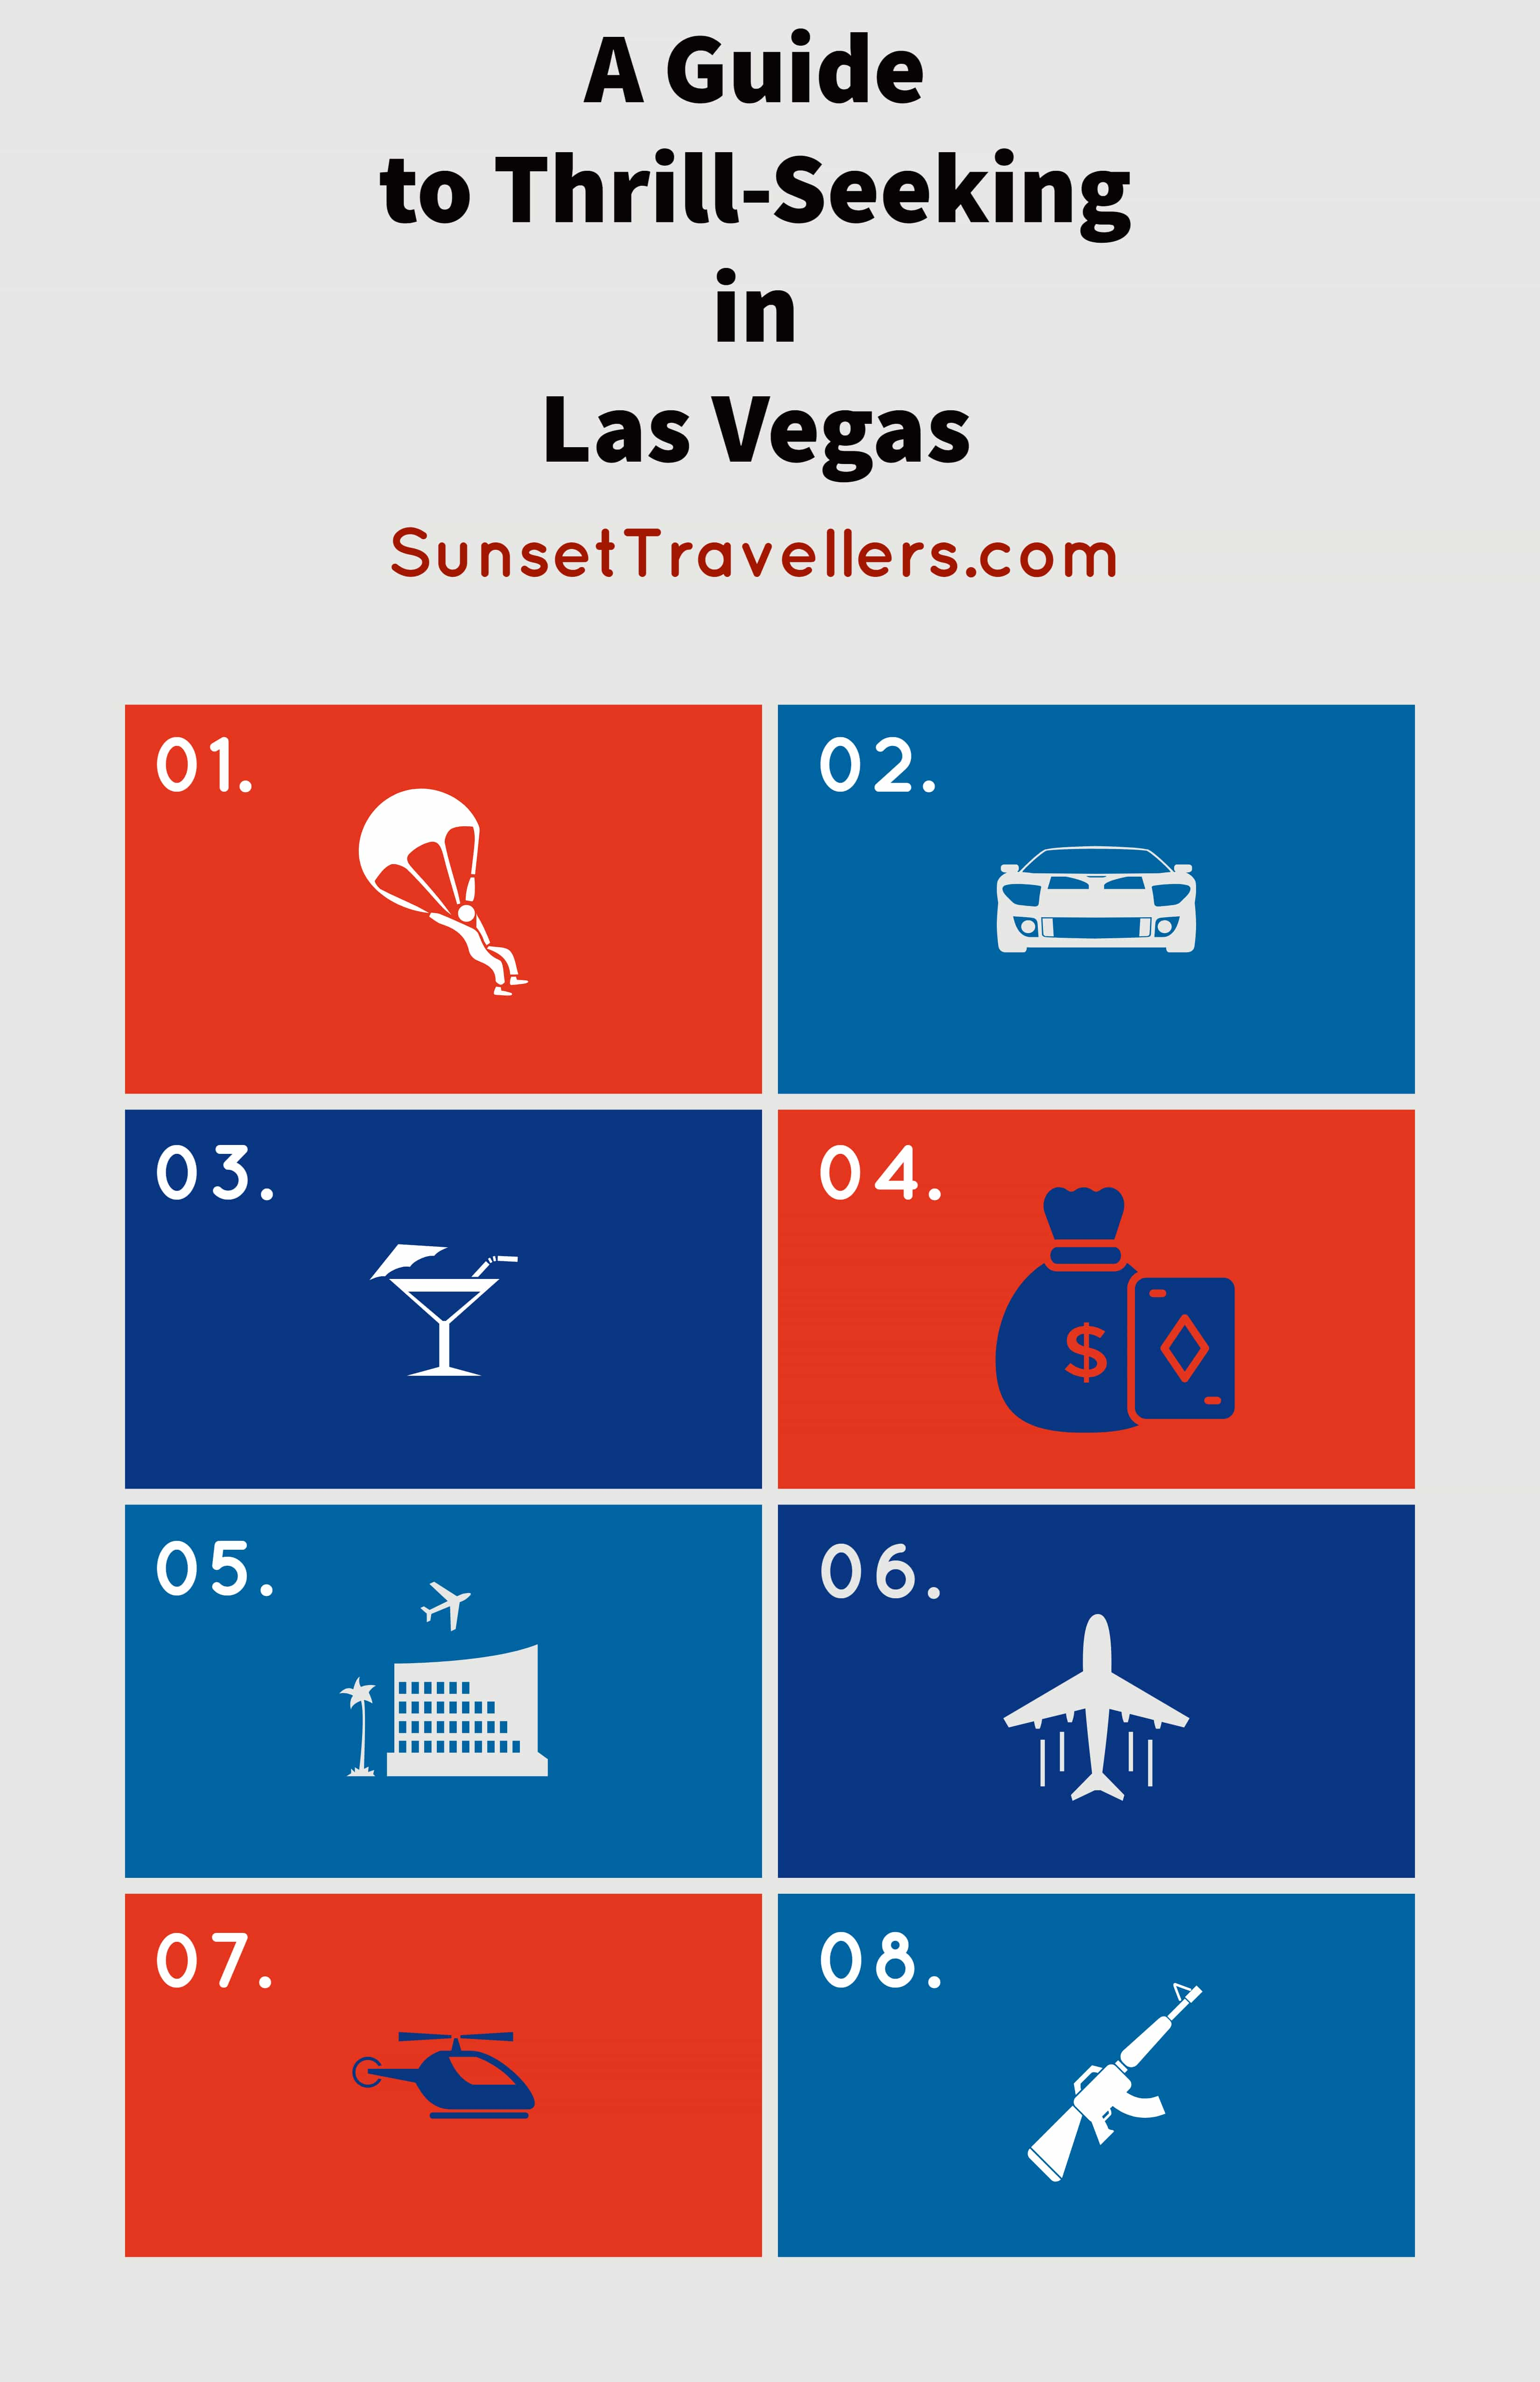 A Guide To Thrill-Seeking In Las Vegas - An Adrelenine Packed Holiday